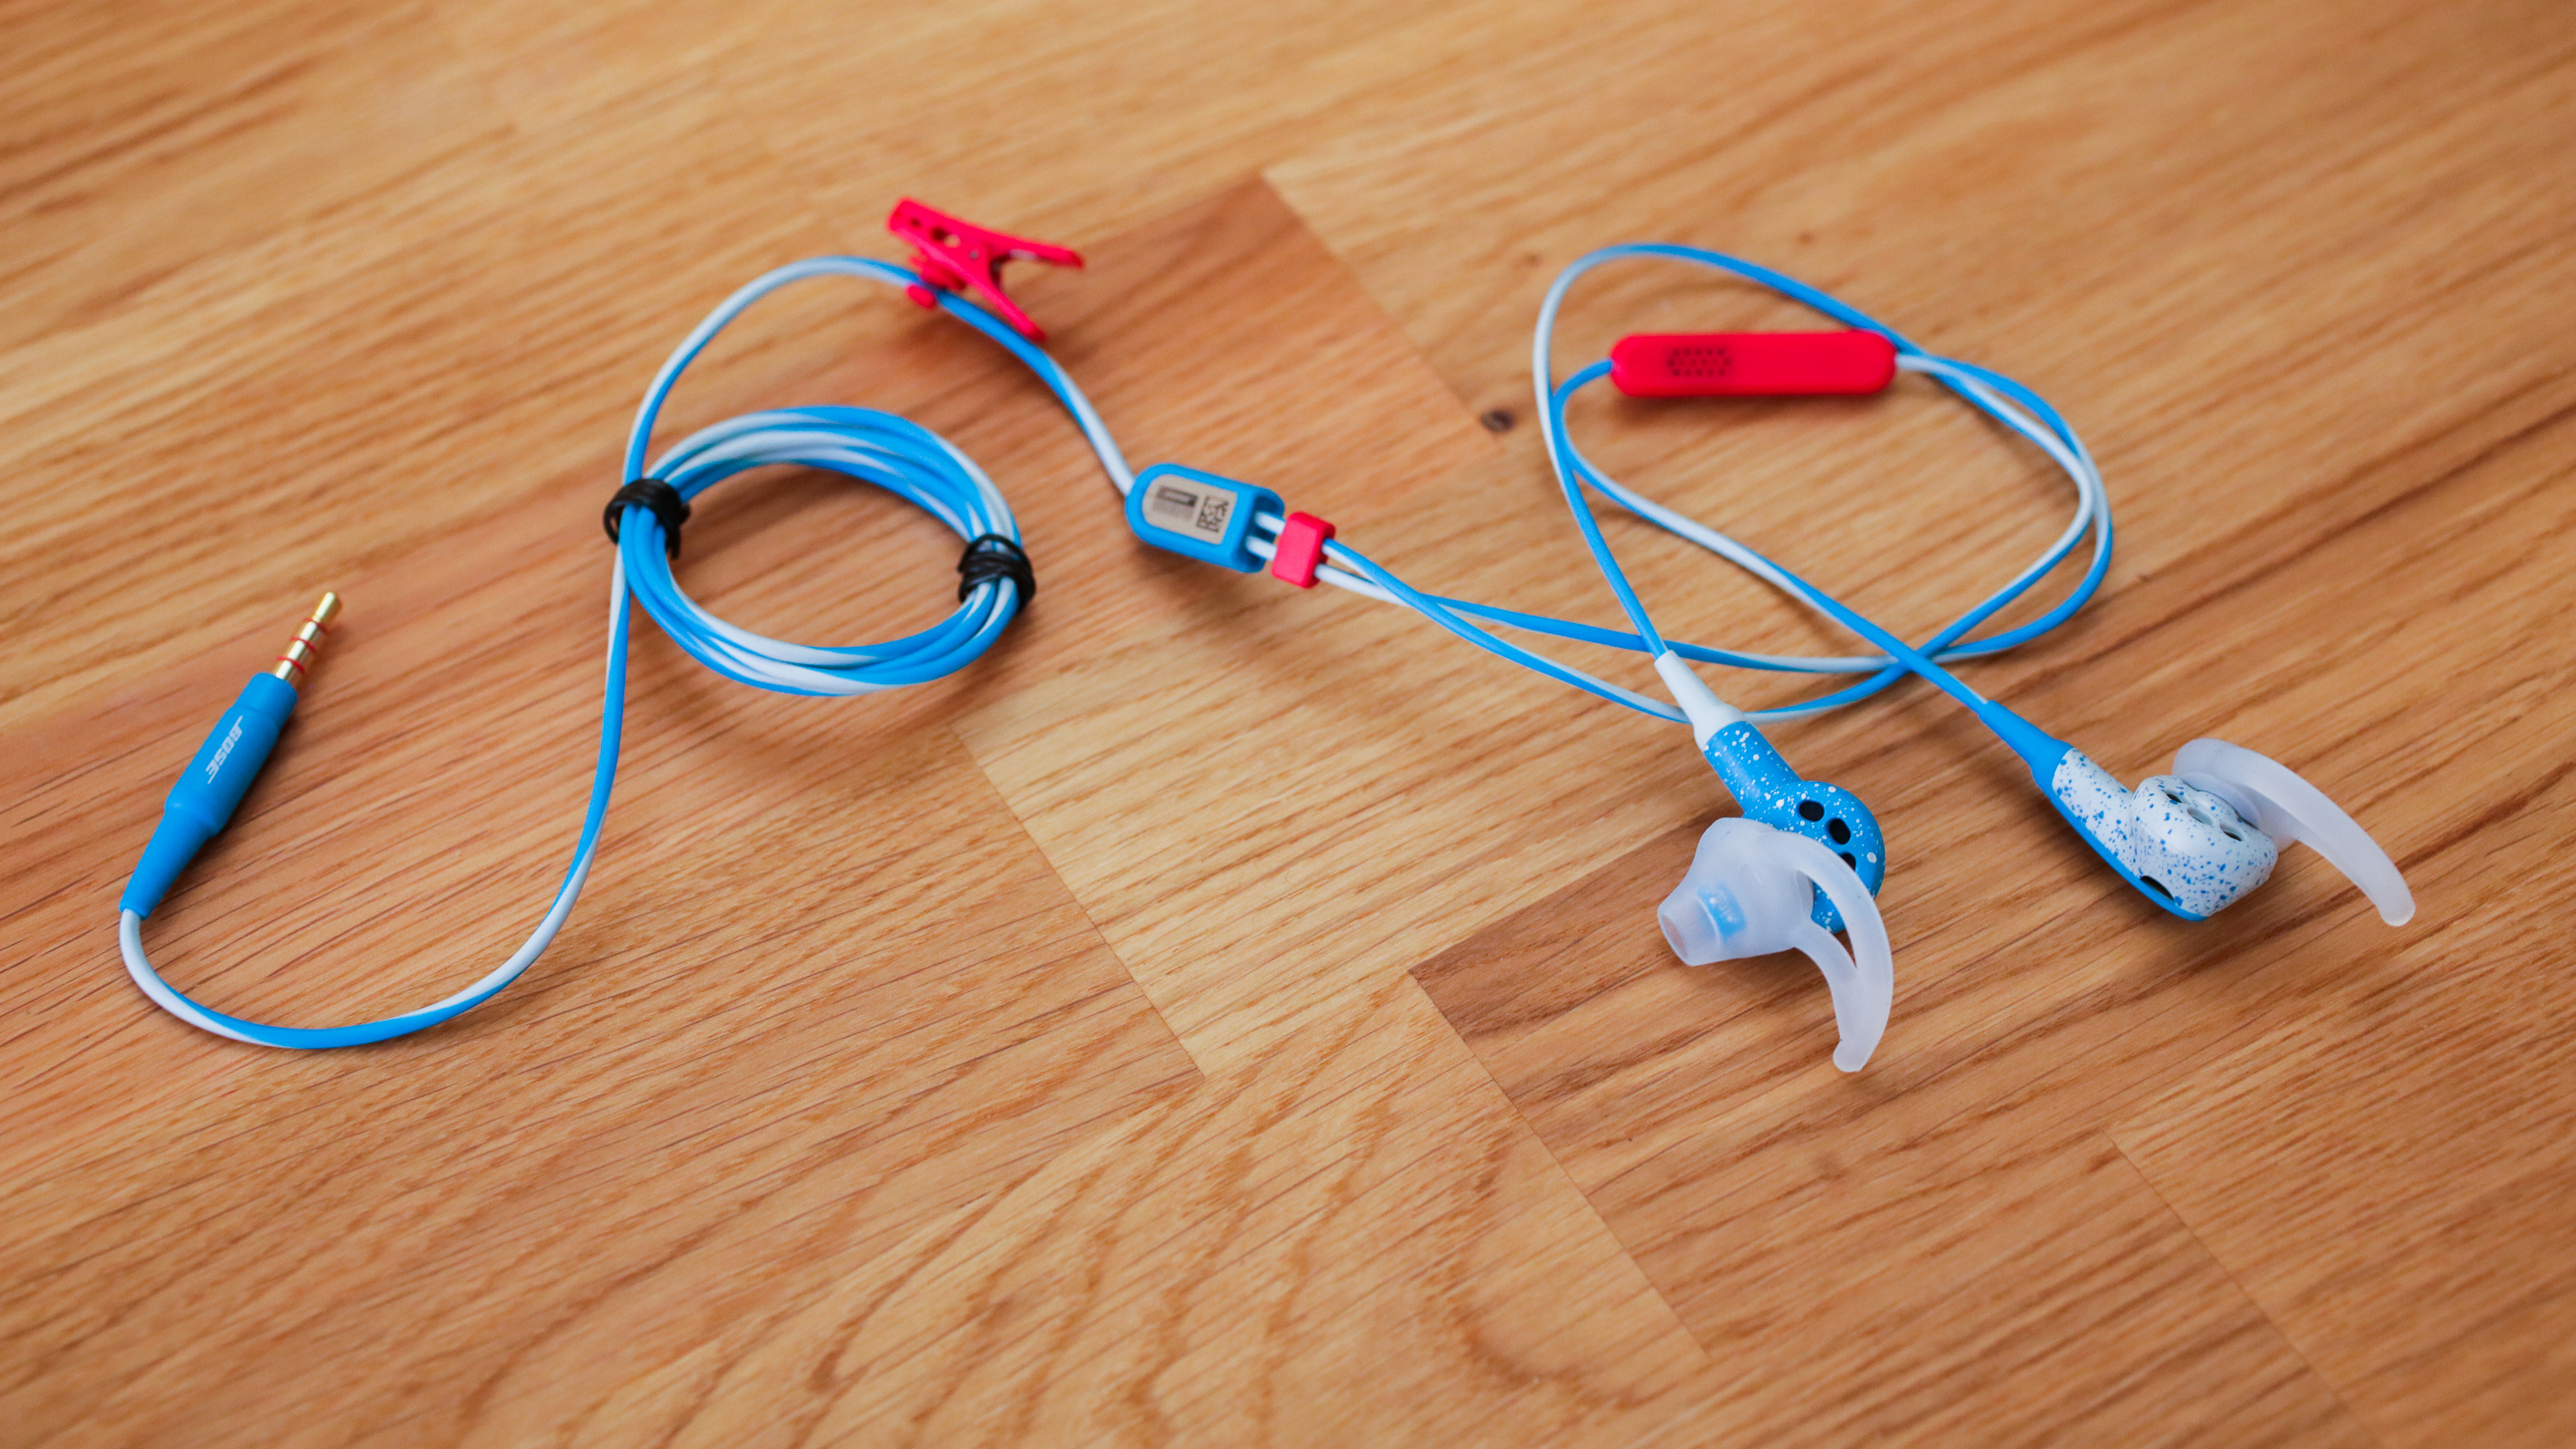 Sporty earbuds that float comfortably in your ears